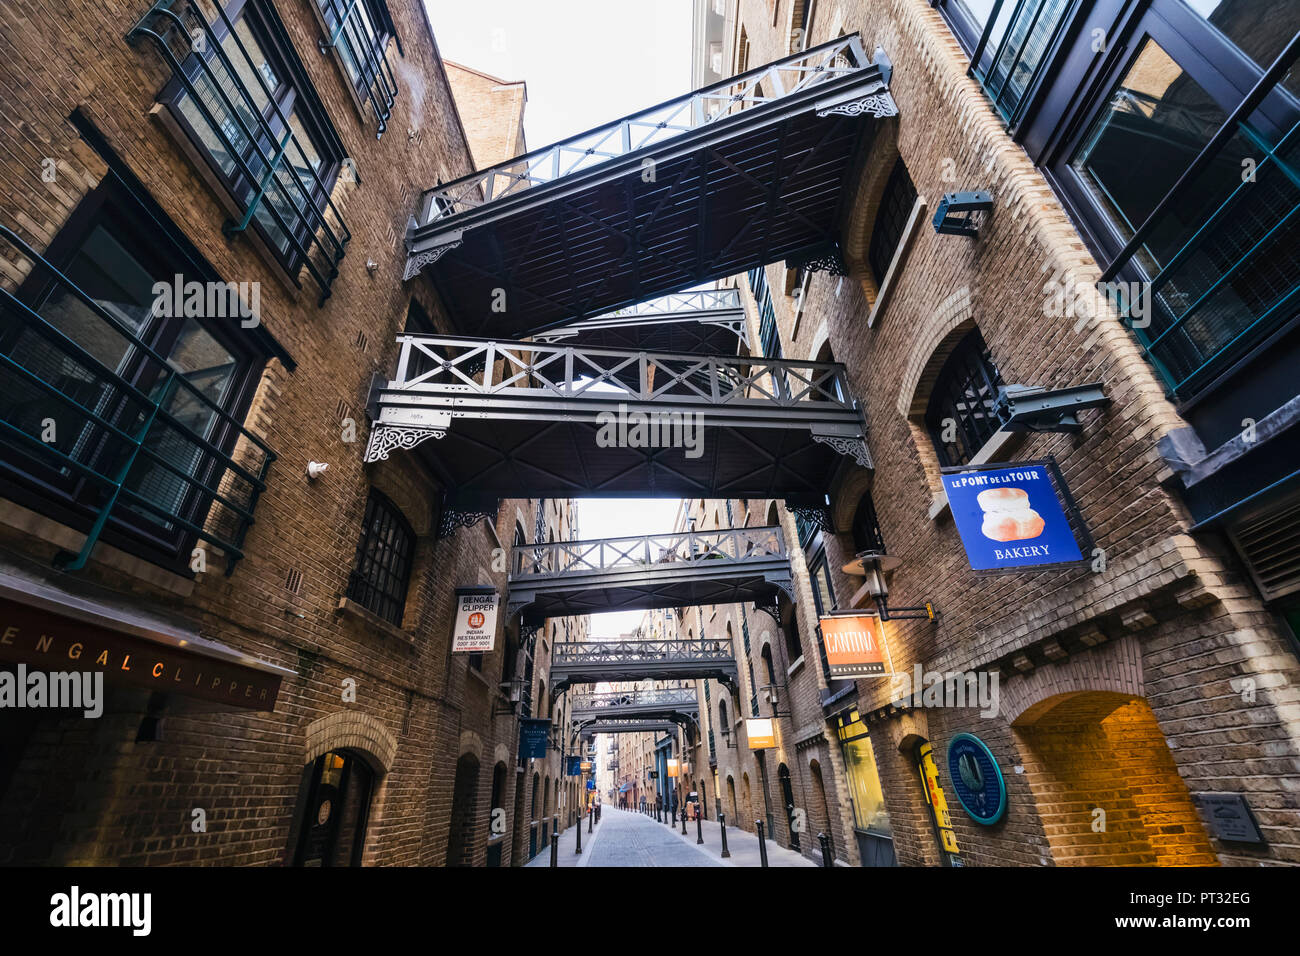 England, London, Southwark, Shad Thames, Converted Warehouses - Stock Image